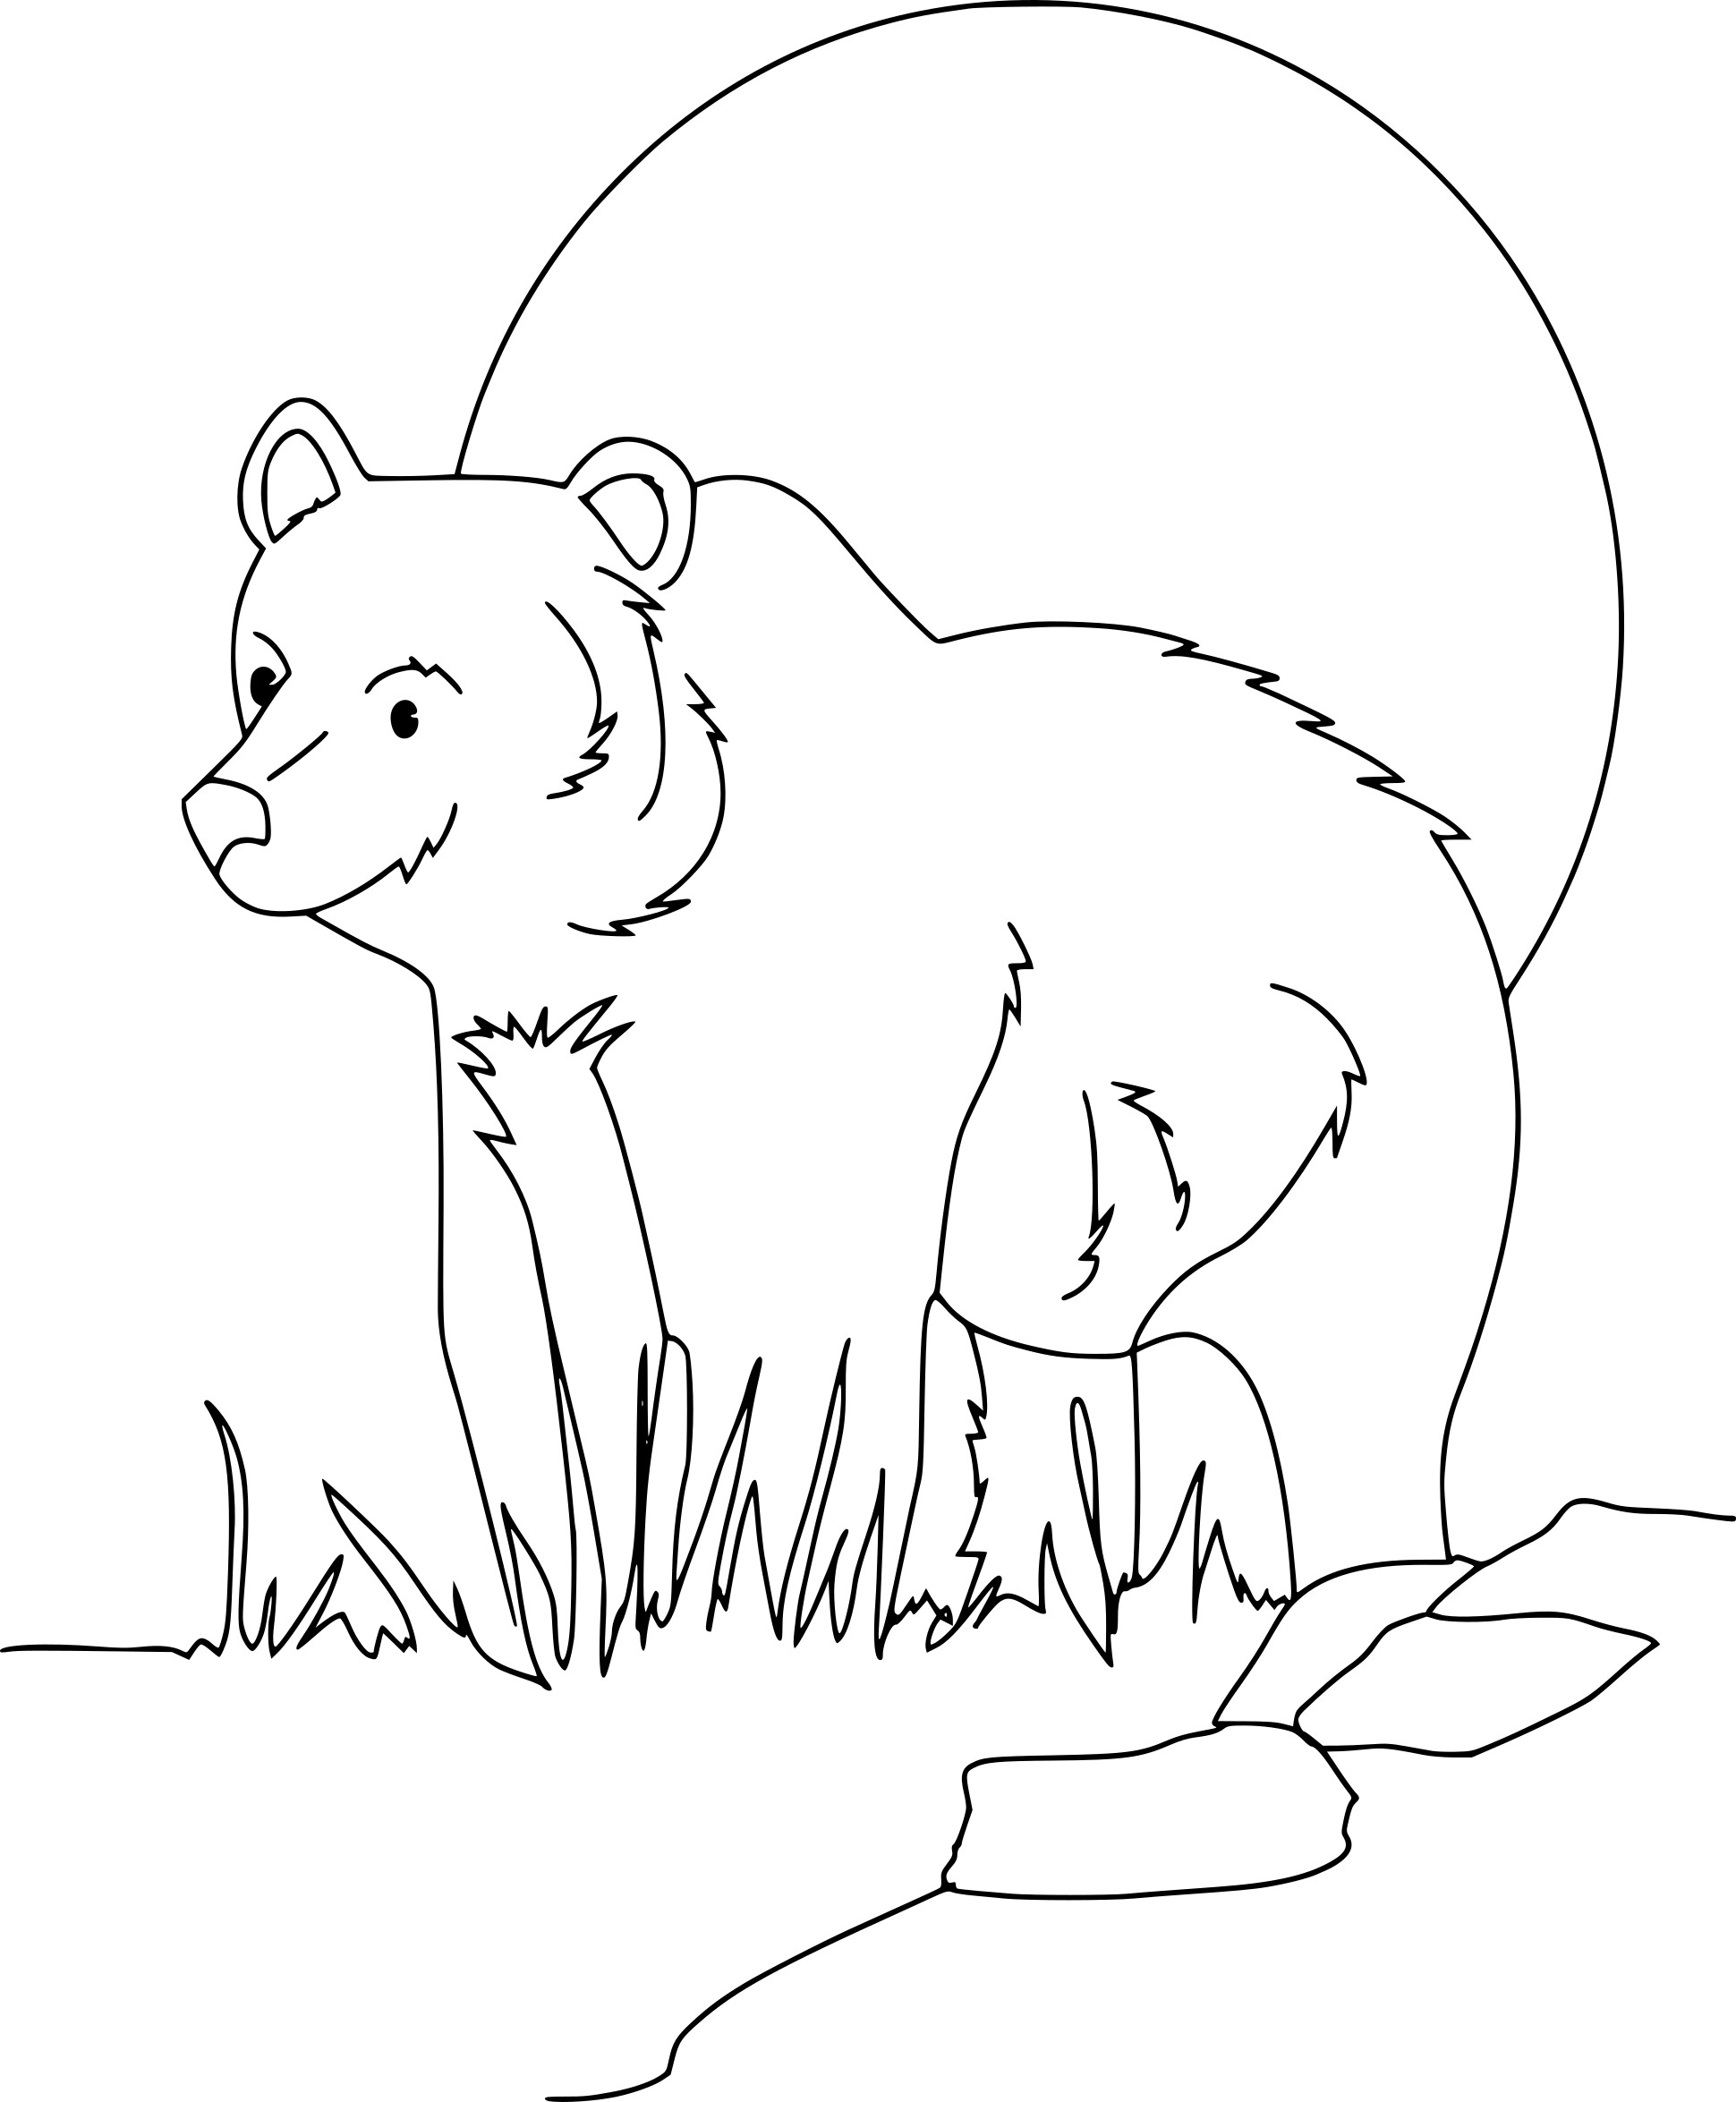 Coloriage Grizzly